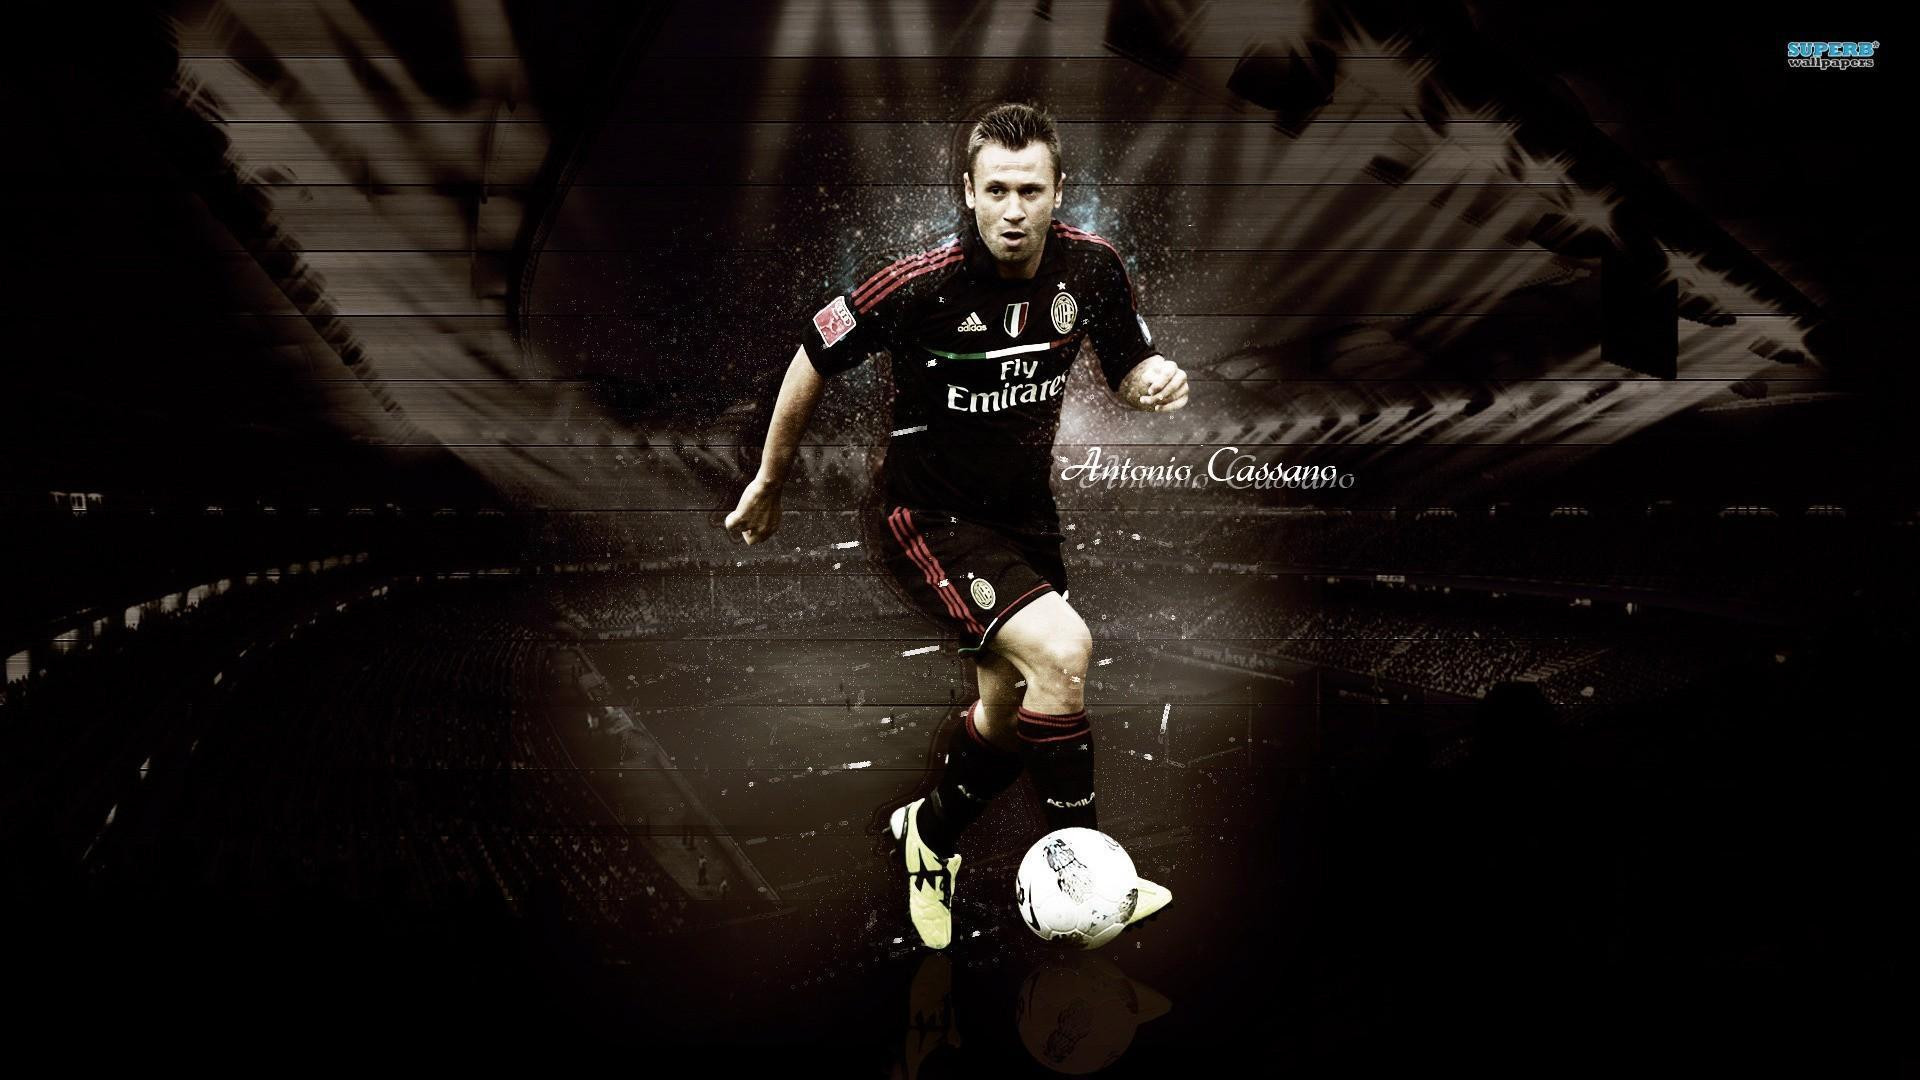 Antonio cassano inter milan futbol futebol calcio wallpapers